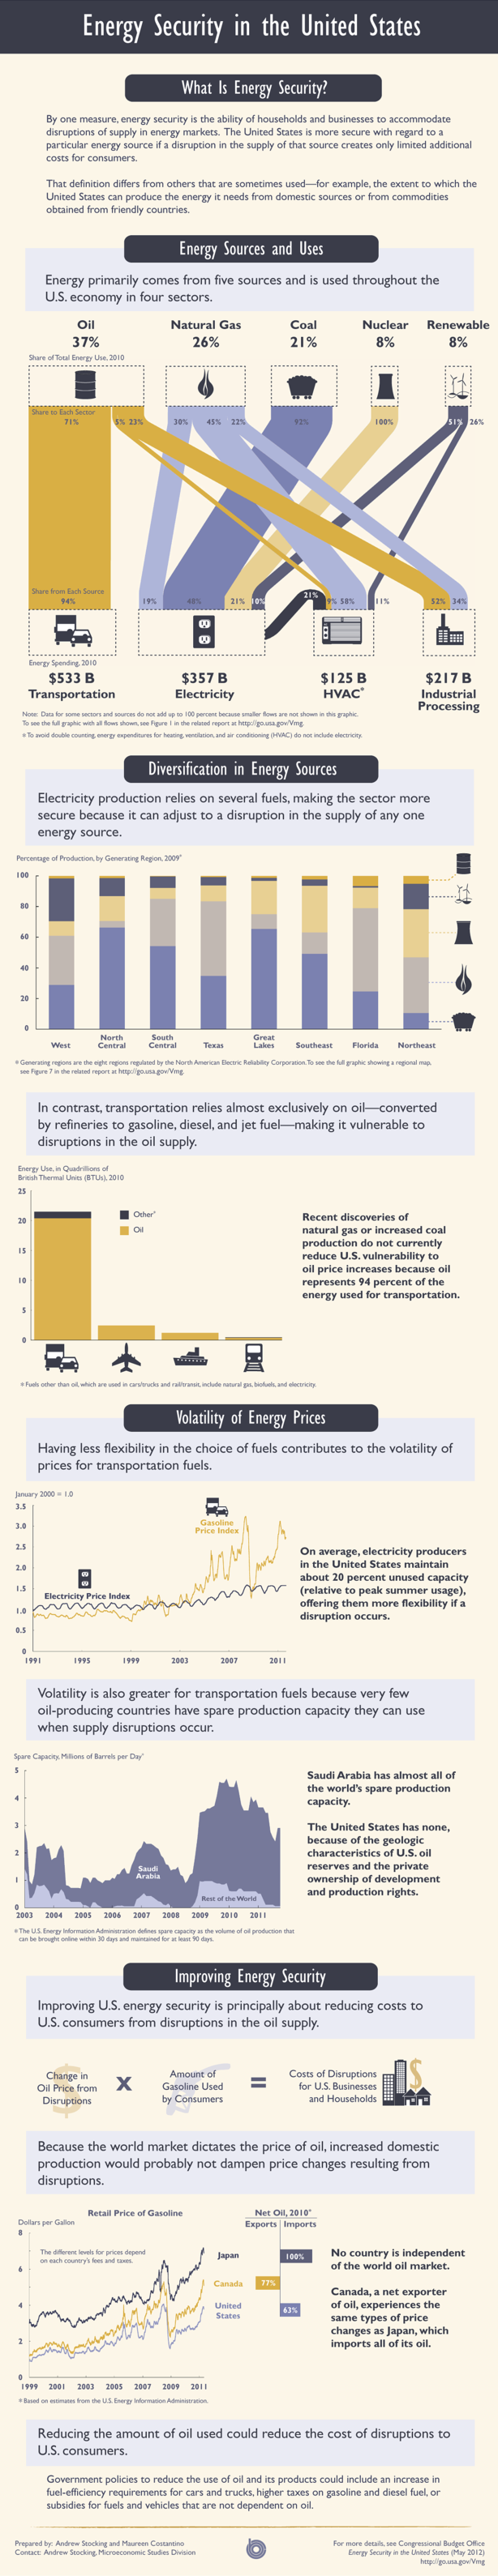 43232-infographic-EnergySecurity.png